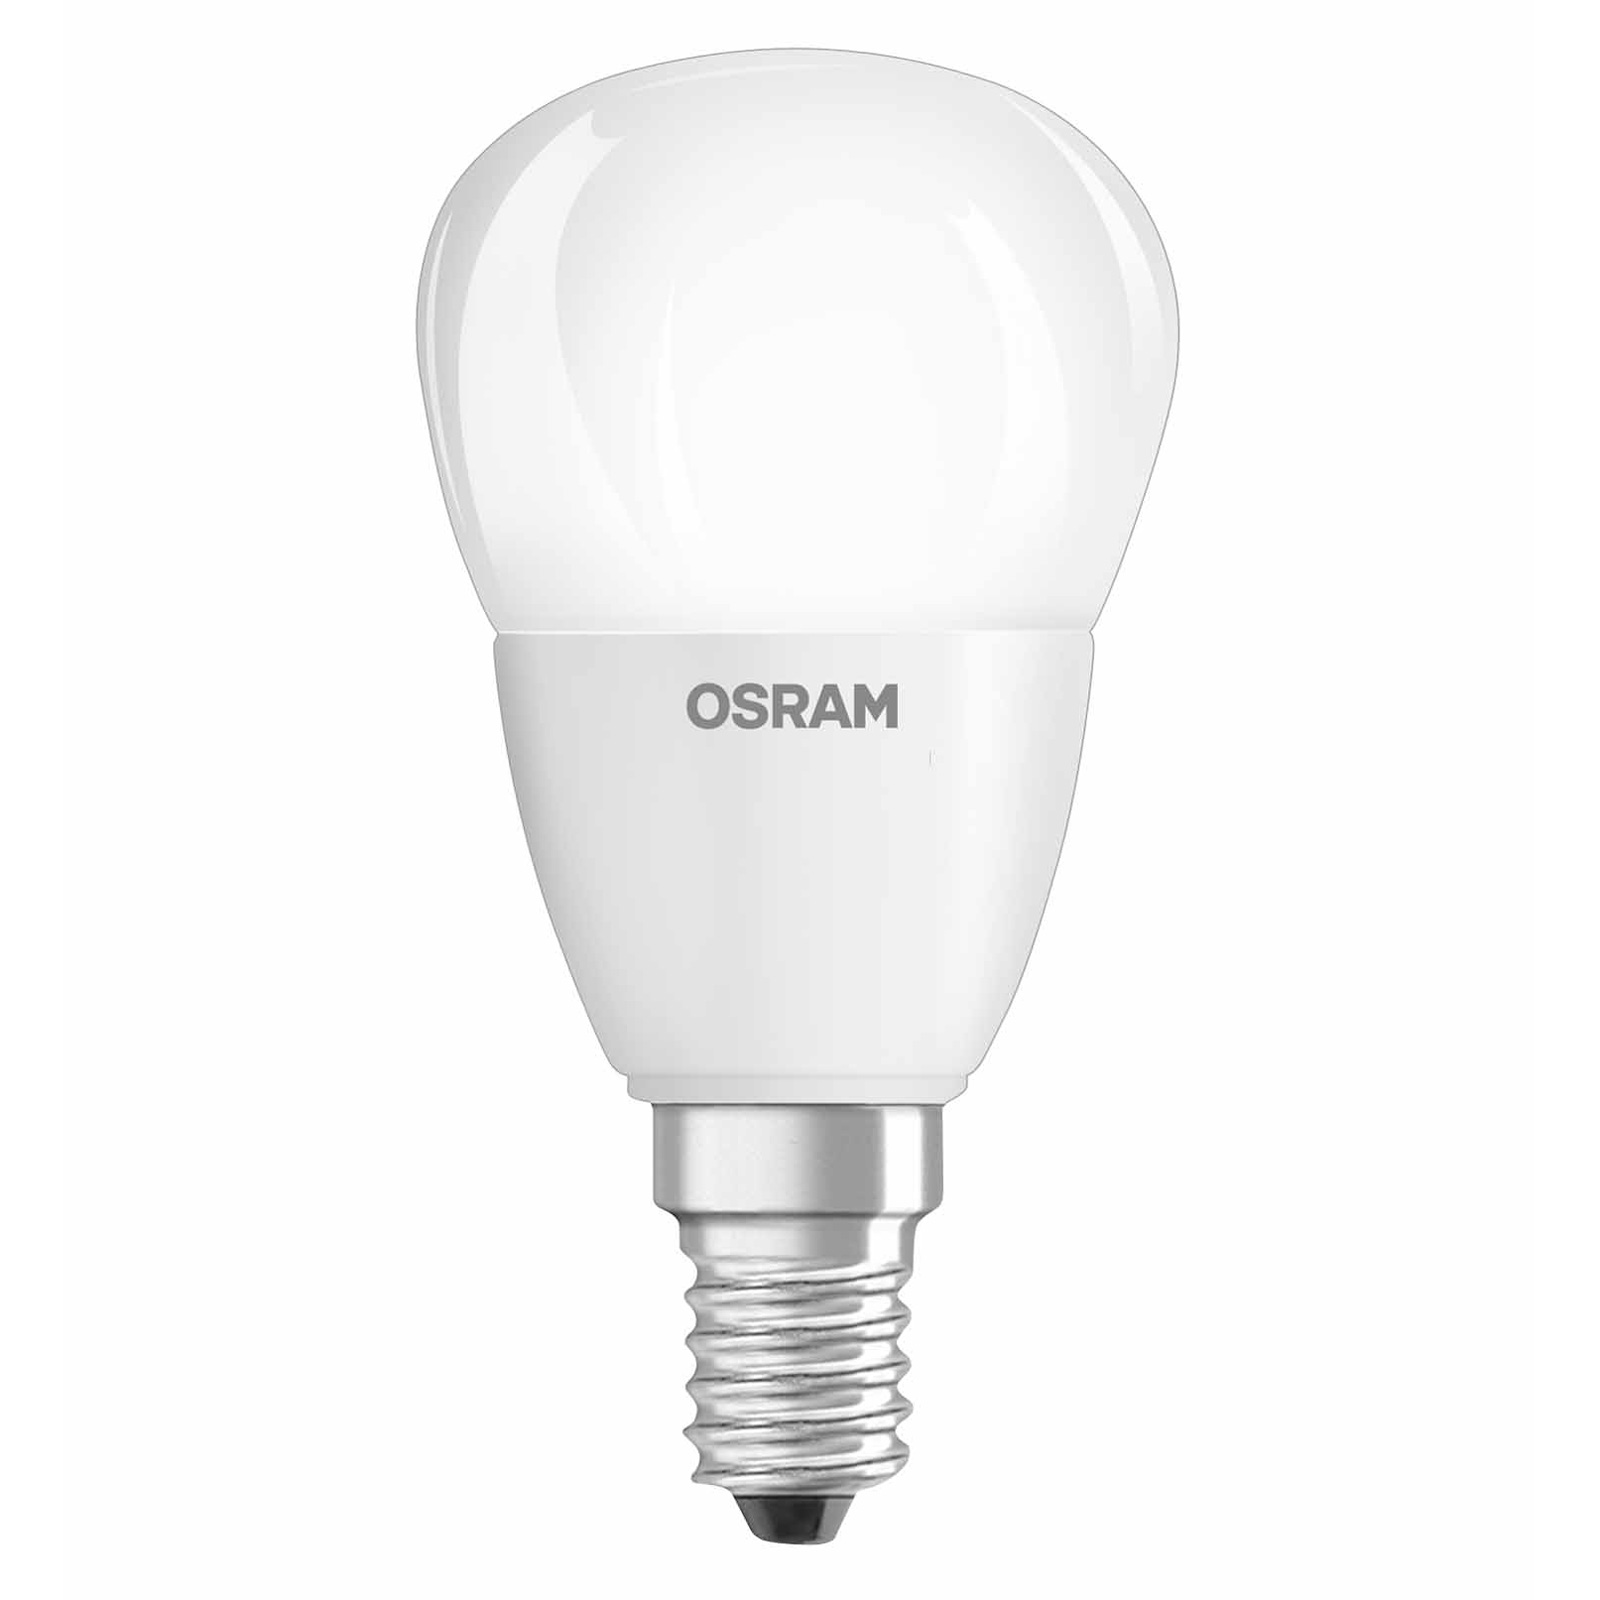 osram led superstar classic p 40 e14 wie 40 watt 470 lumen warmwei dimmbar ebay. Black Bedroom Furniture Sets. Home Design Ideas